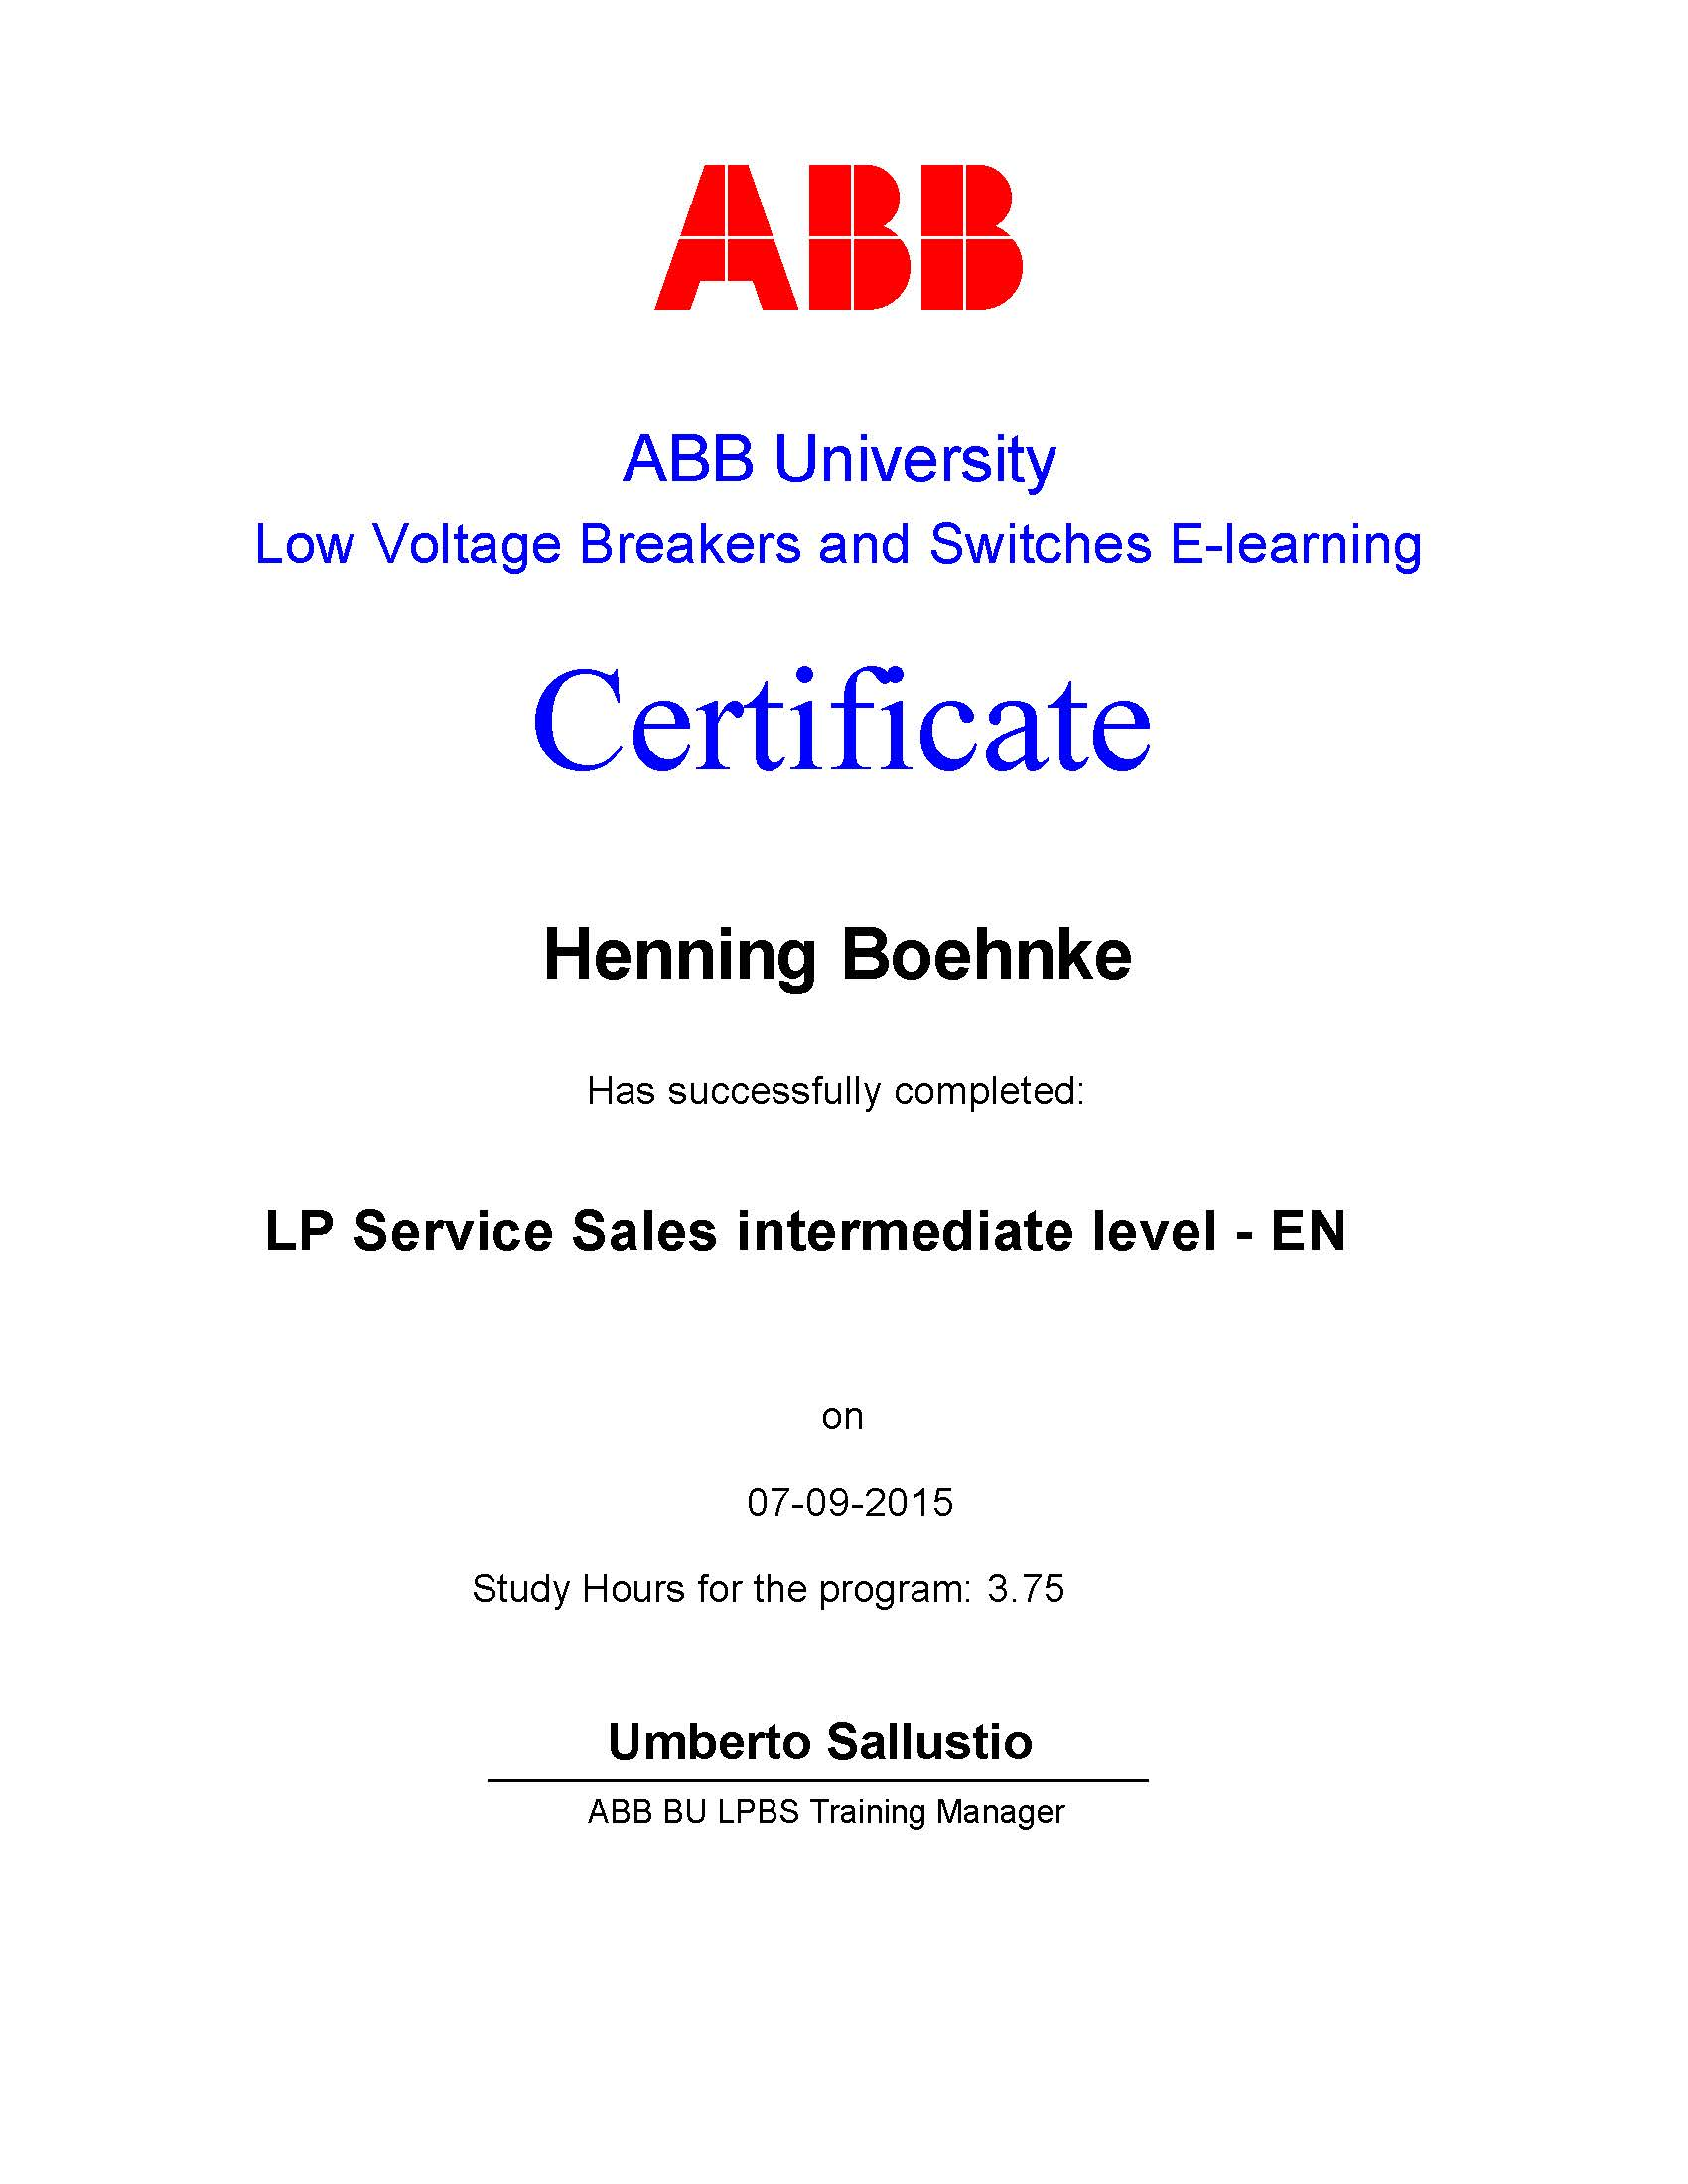 LP Service Sales Intermediate Level